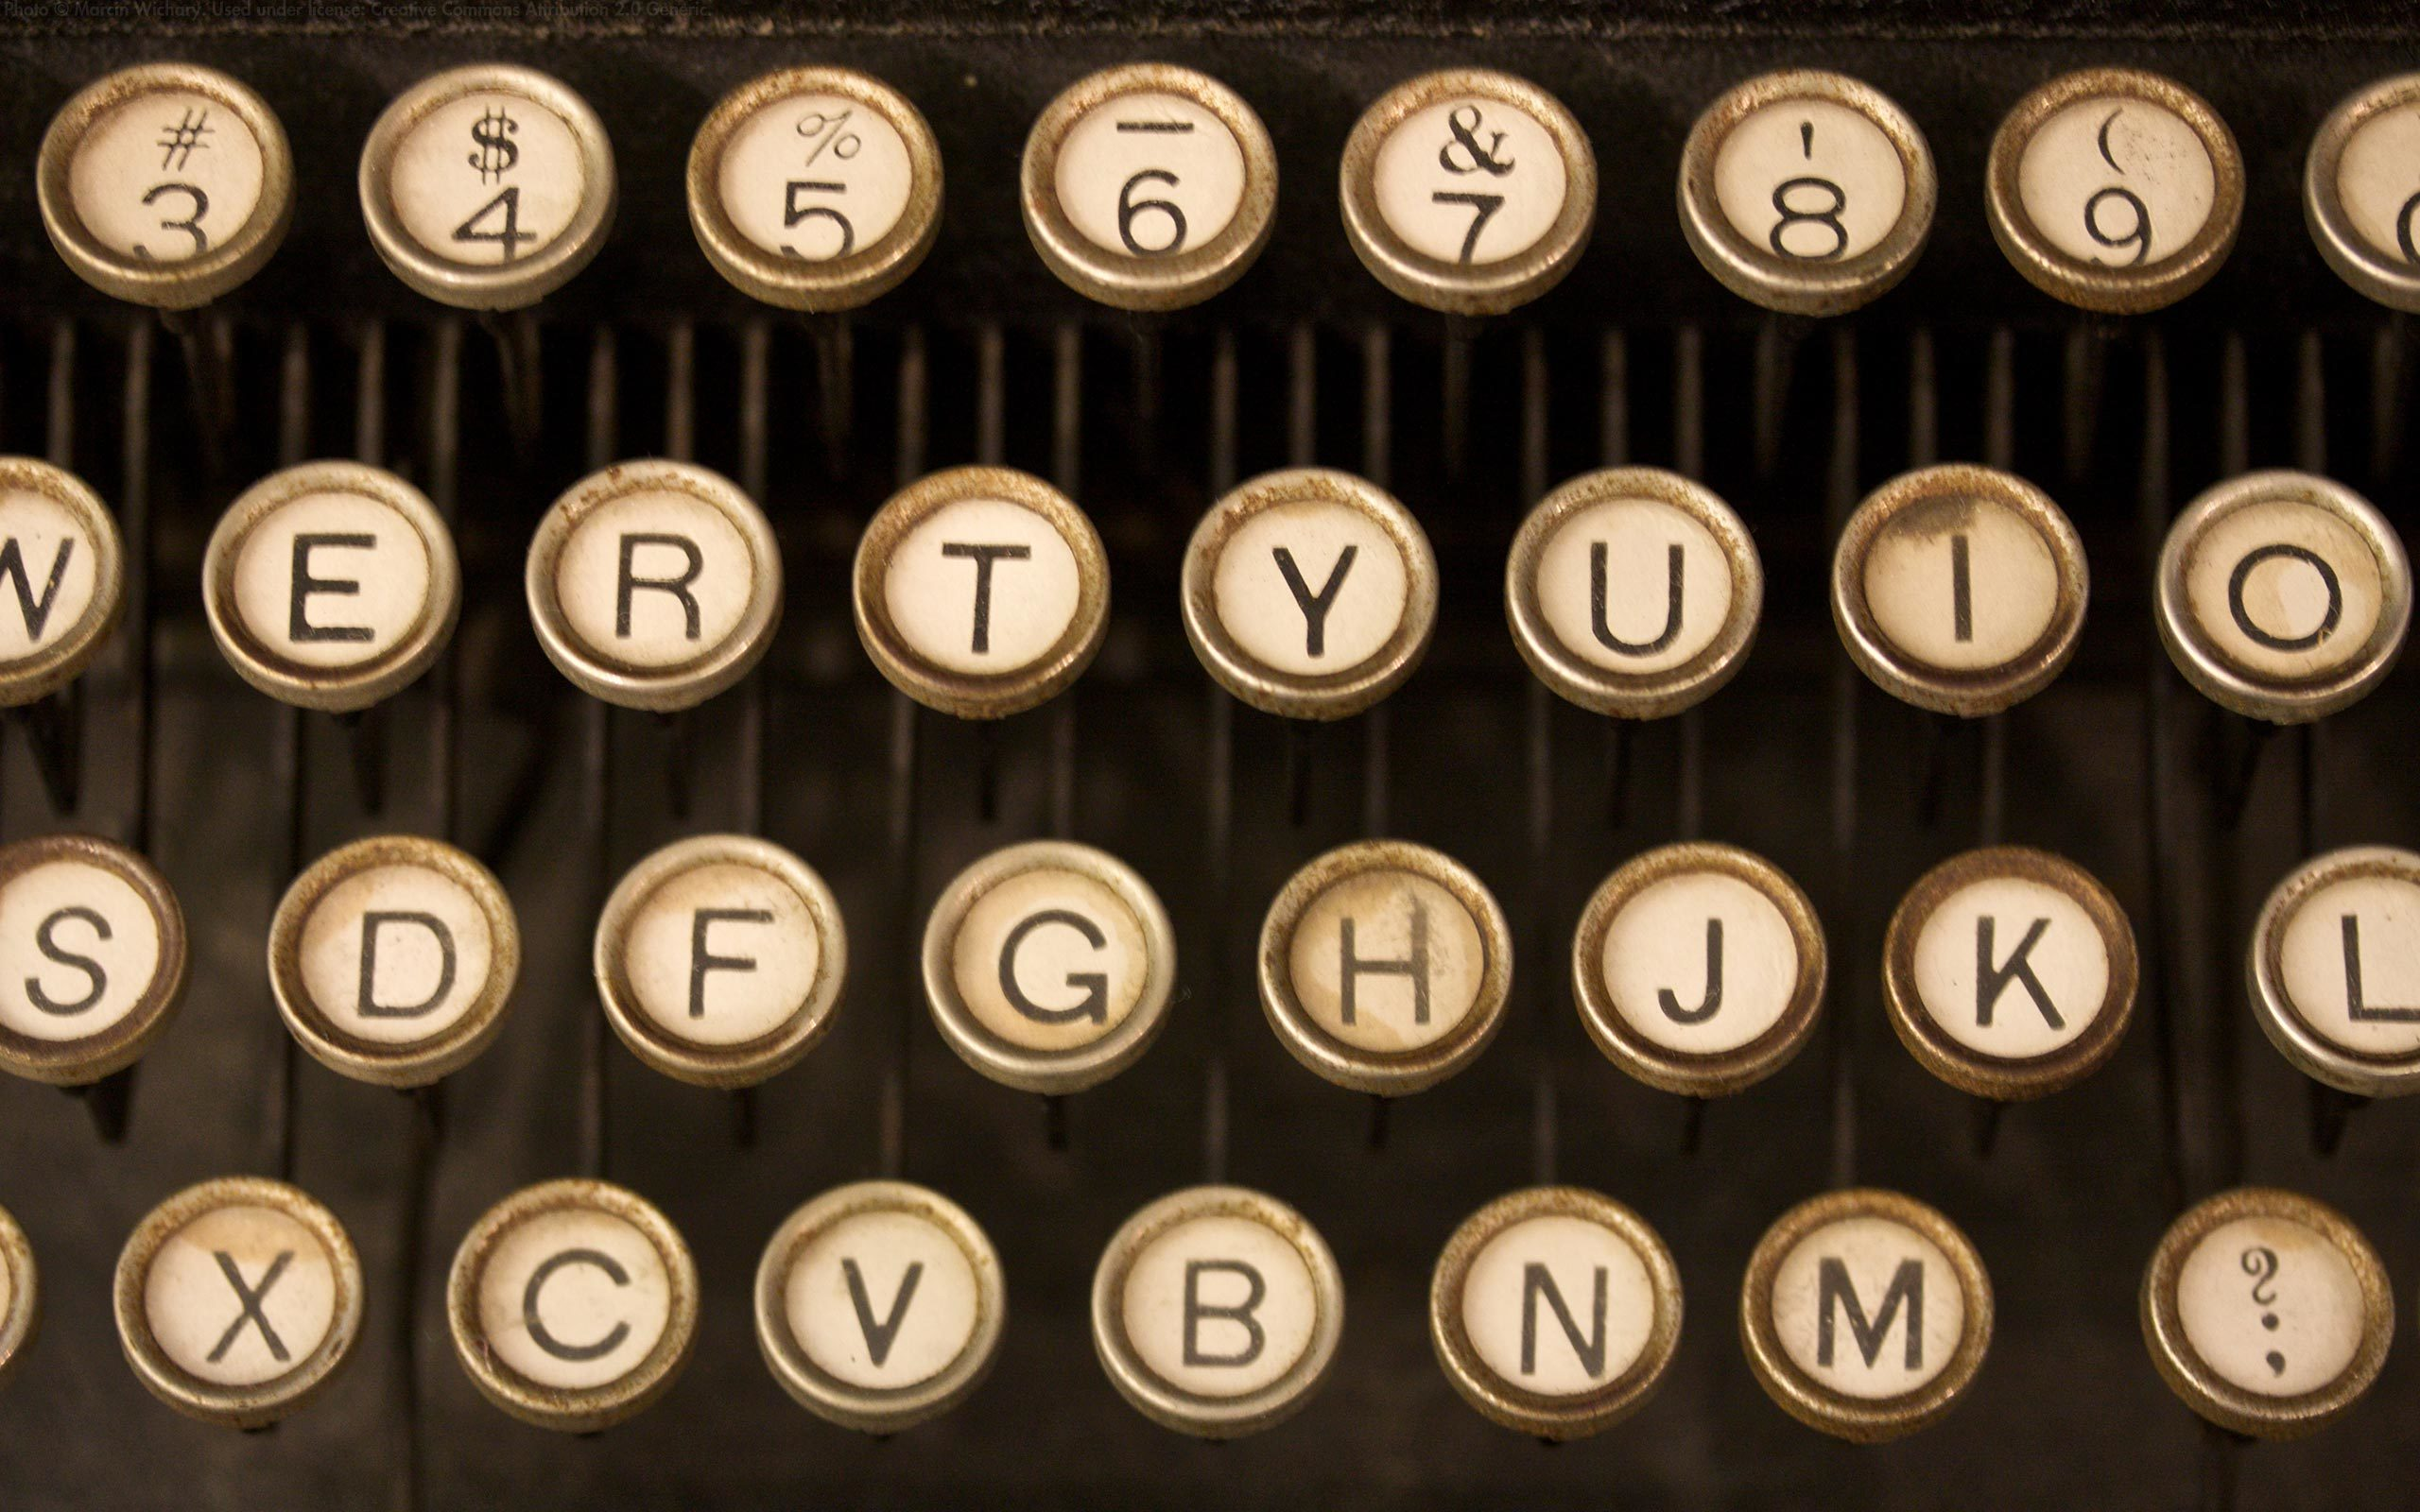 keyboards numbers alphabet letters HD Wallpaper